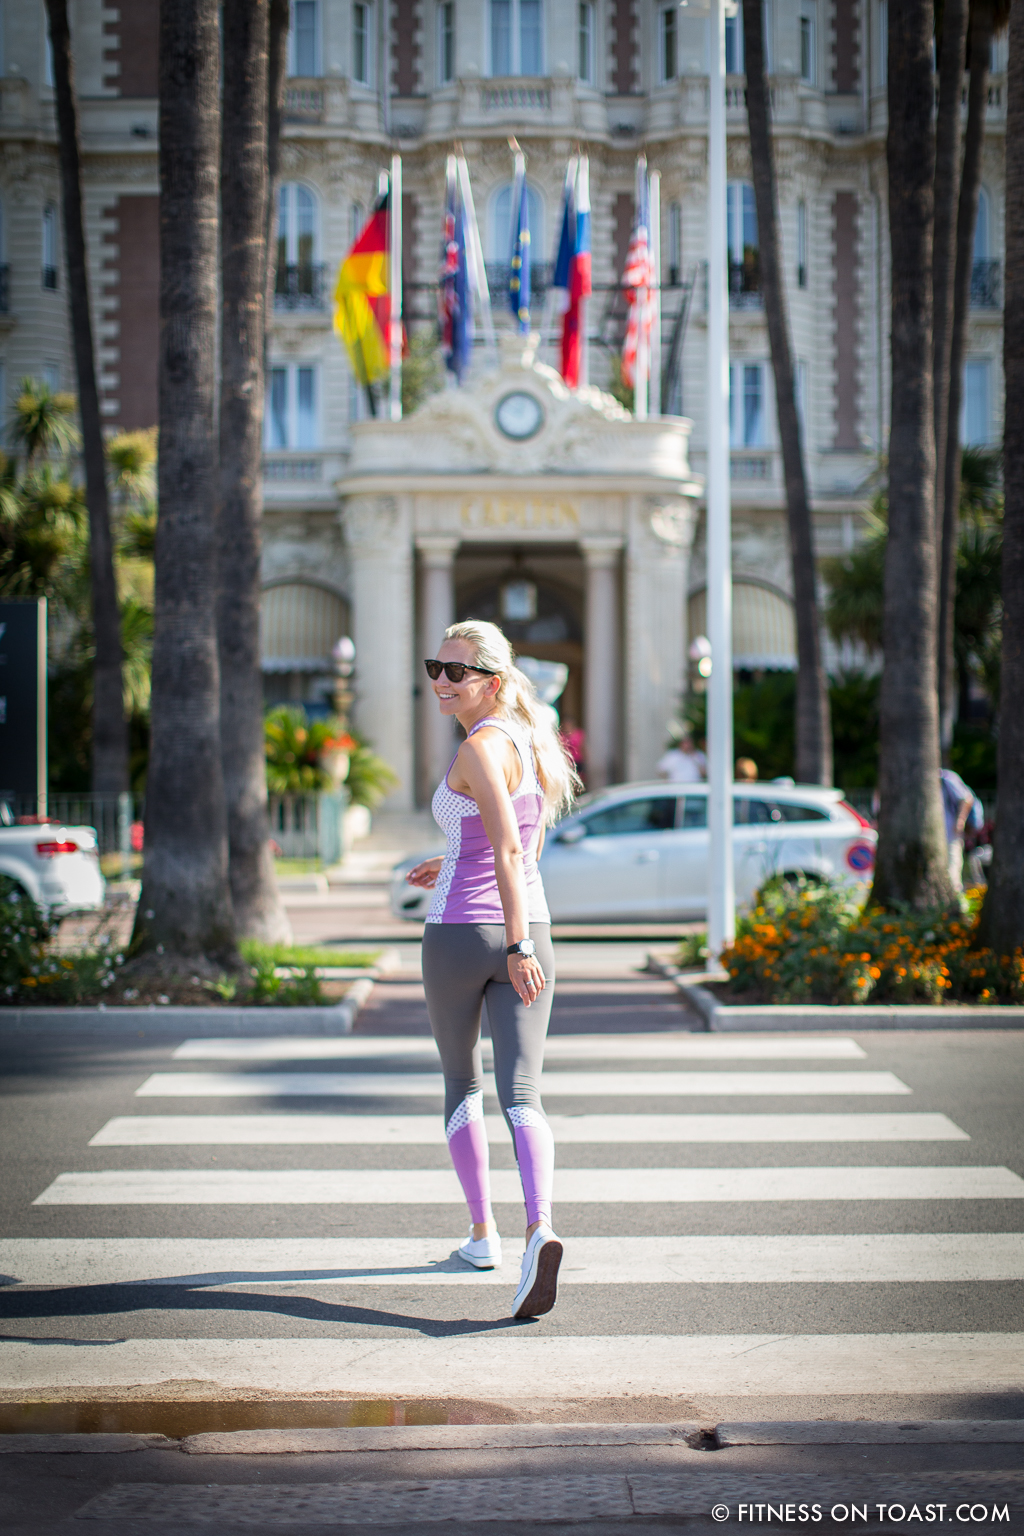 Vevie Hertford Cannes La Croisette Run Fitness On Toast Health Fashion Running Blog Faya -14